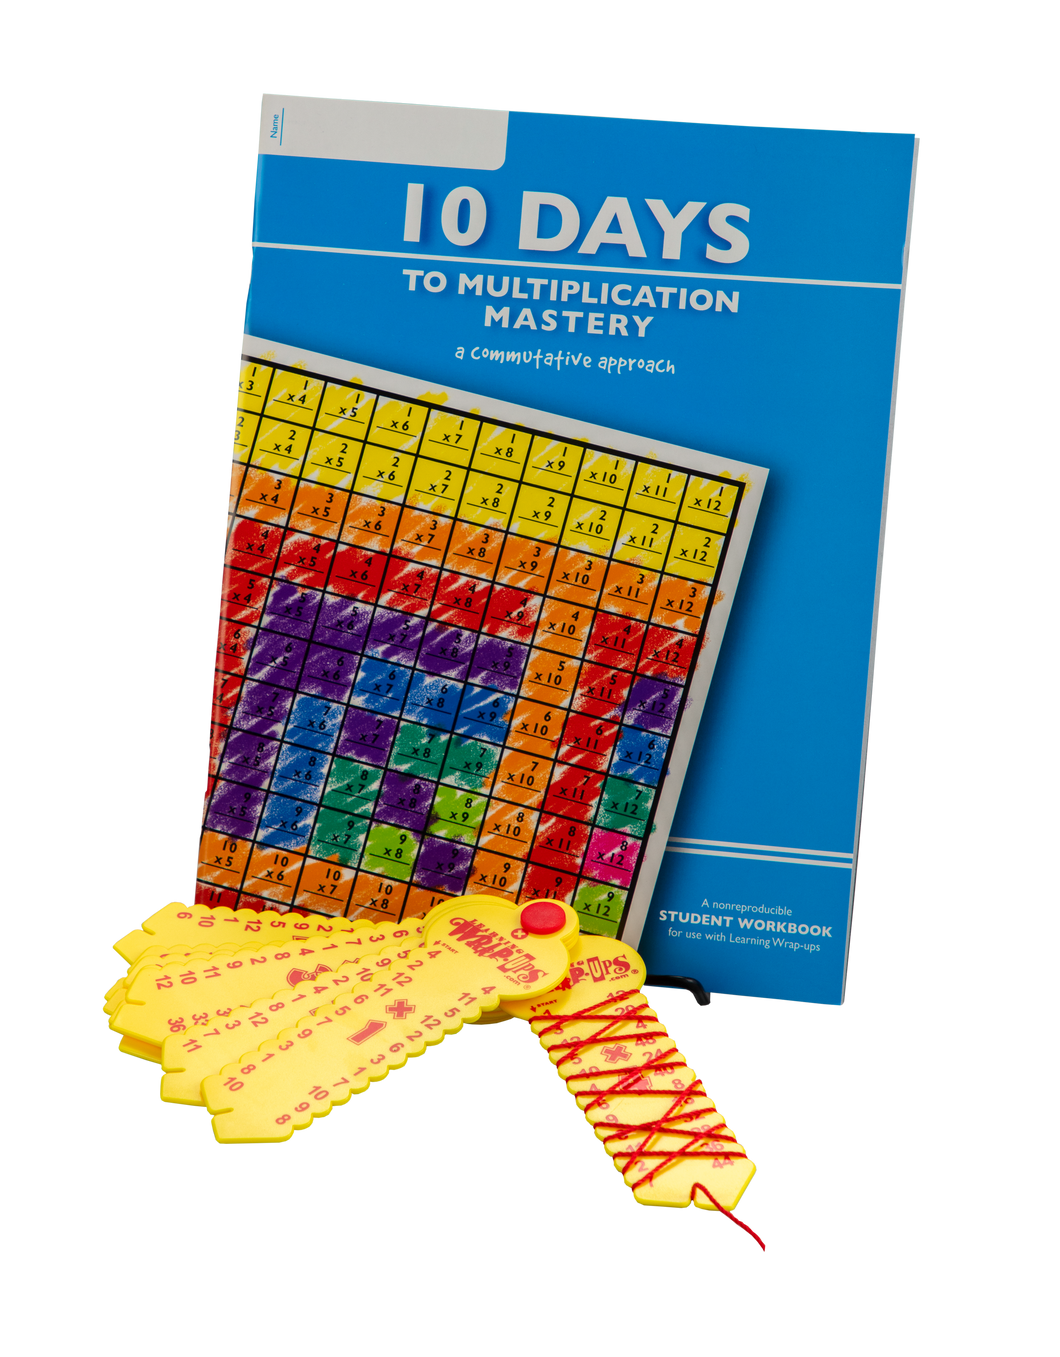 10 Days to Multiplication Mastery w-64 pg Workbook & Wrap-up Combo